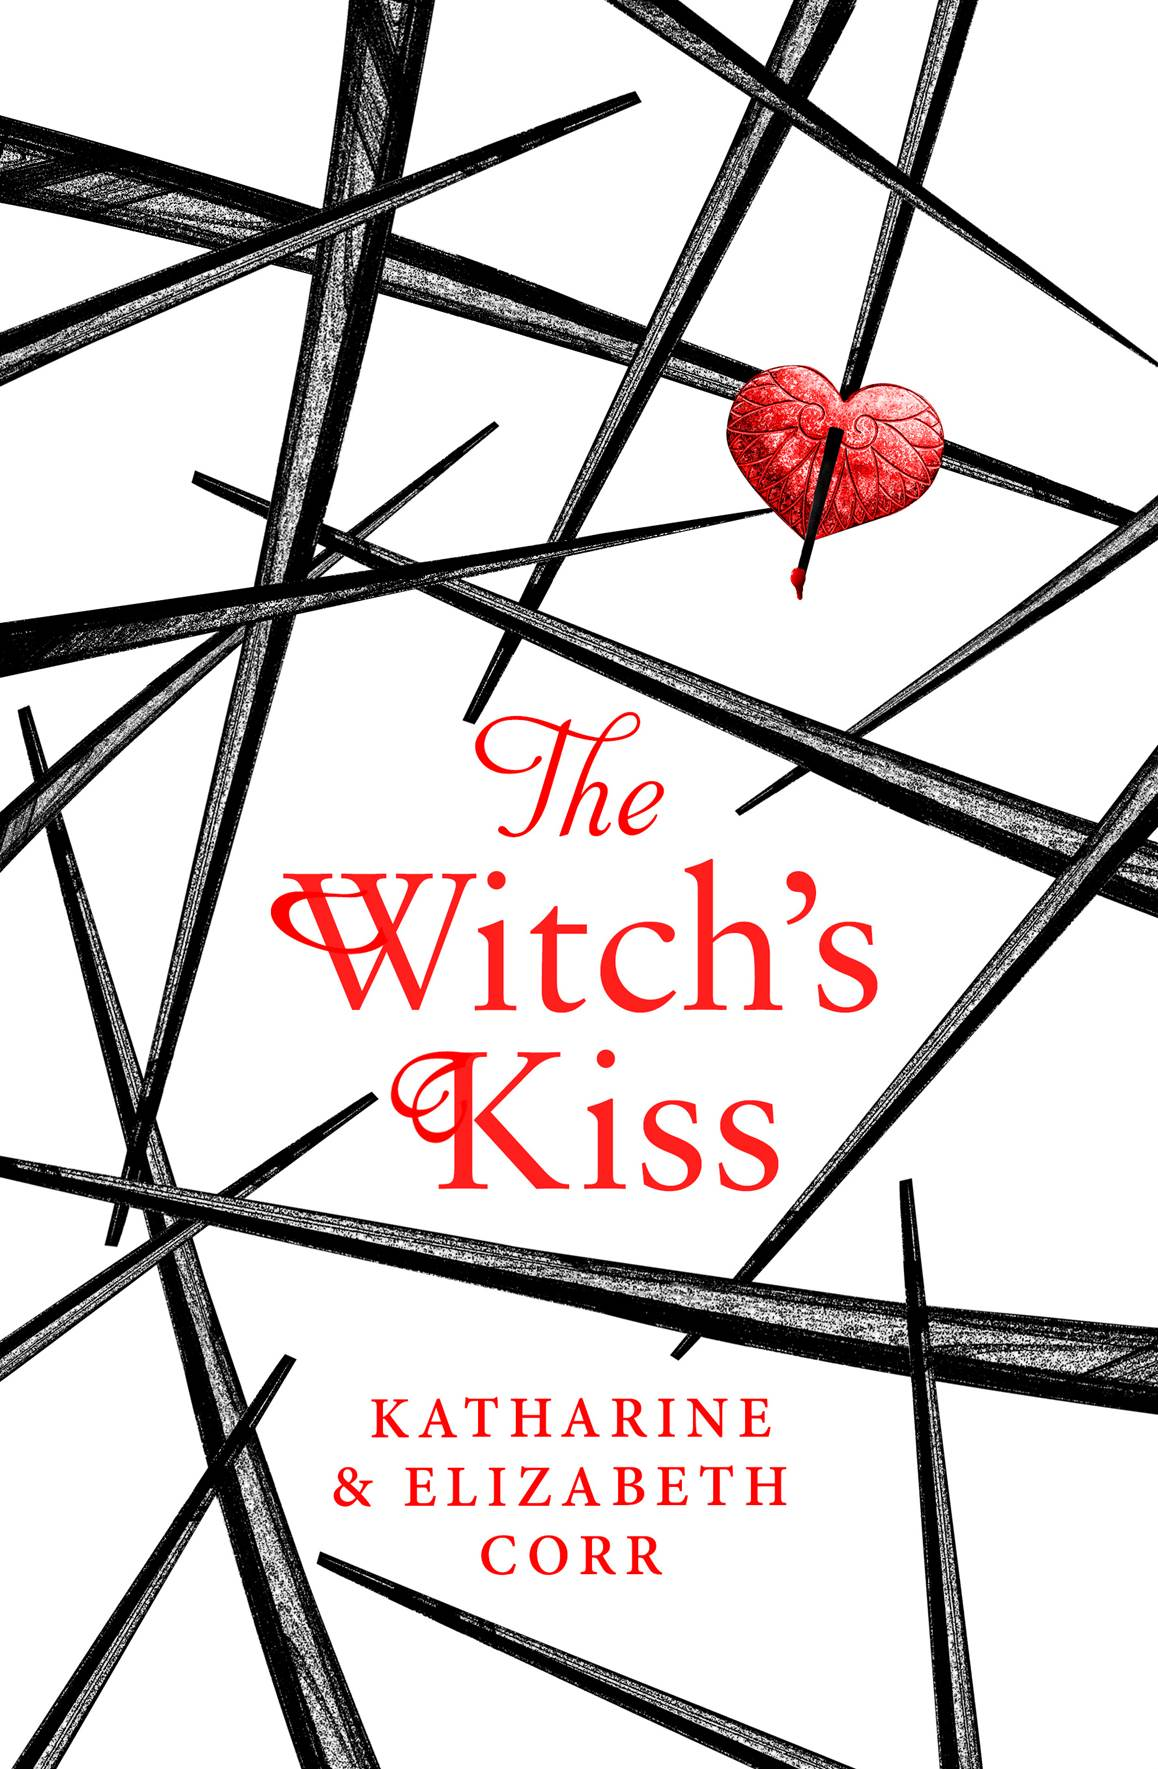 Early concept for The Witch's Kiss